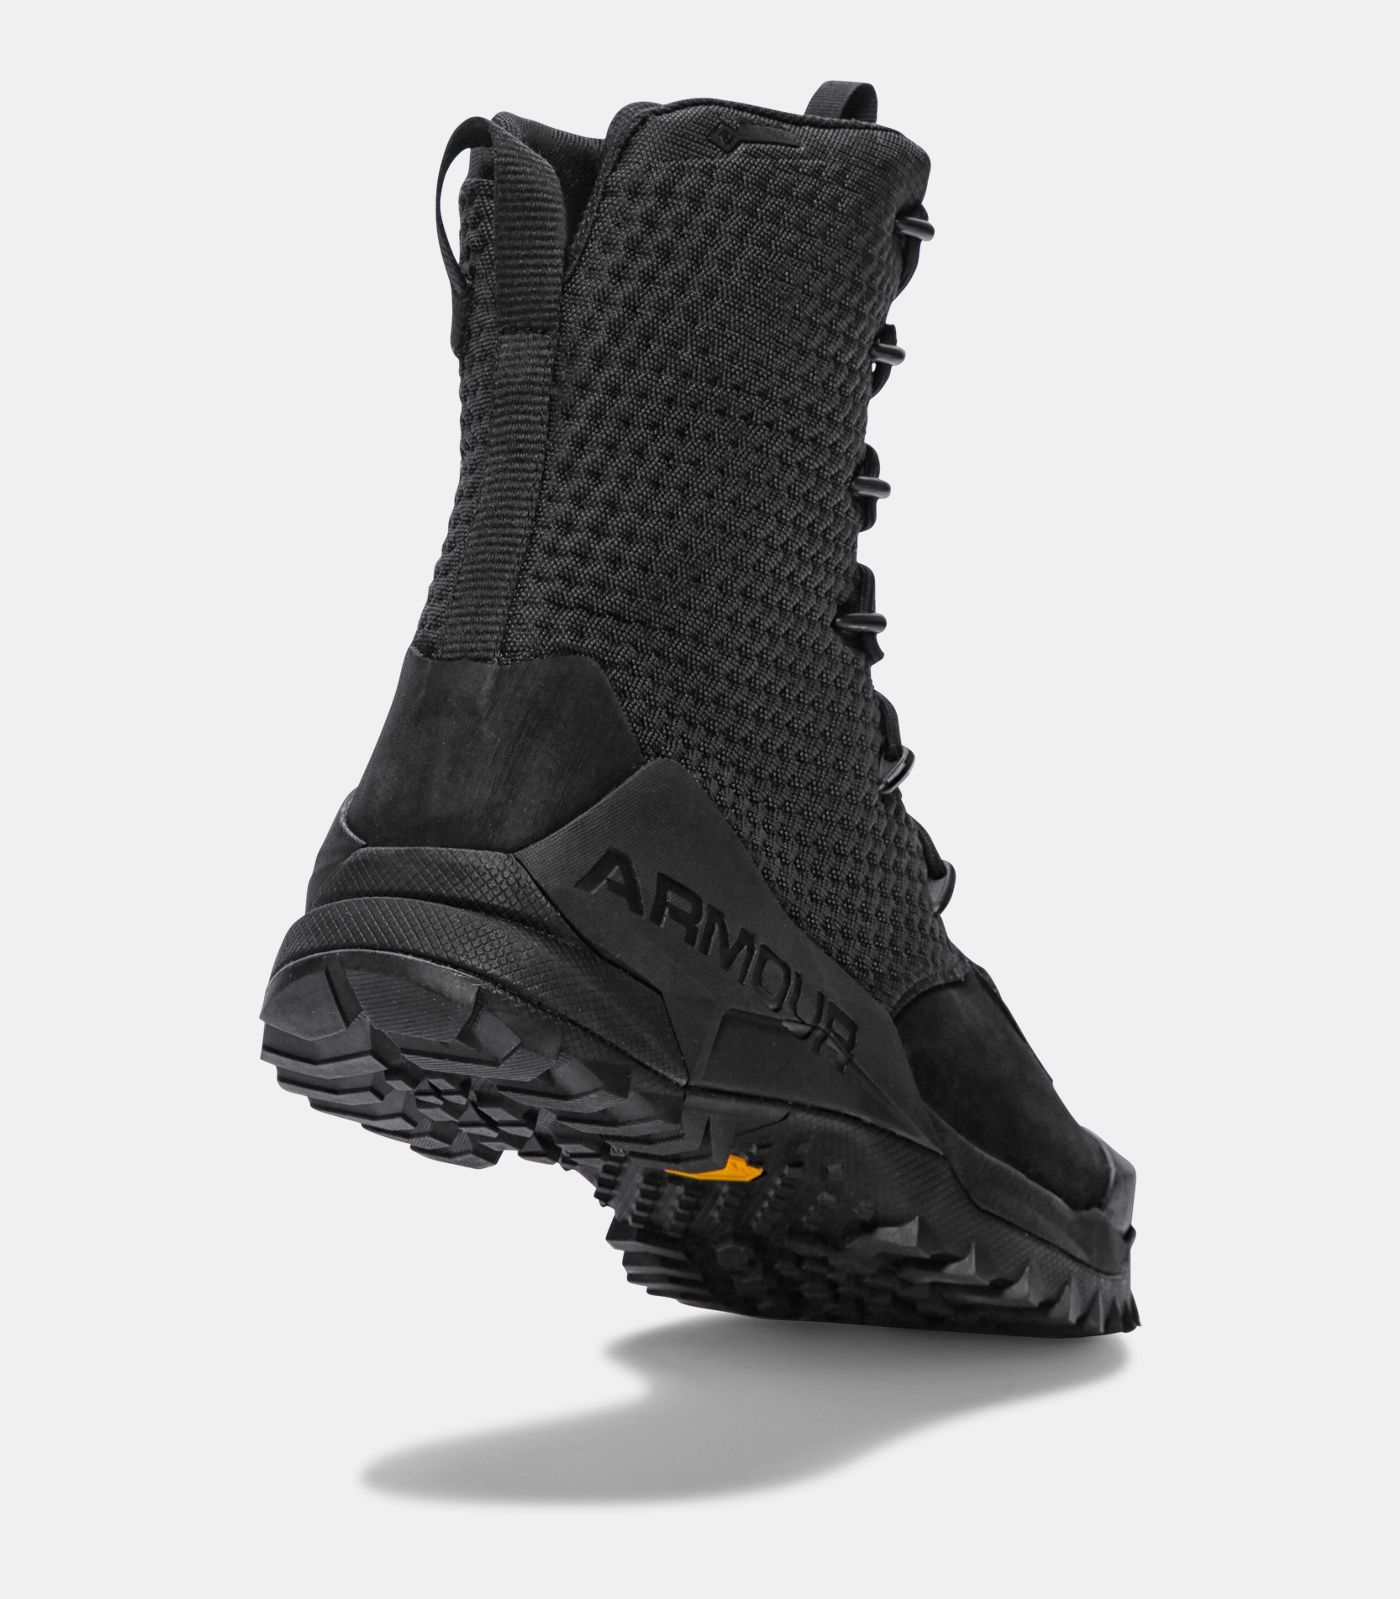 36cbafebc59 Under Armour Mens Infil Ops GORE-TEX - Black 8.5 in 2019 | kg ...